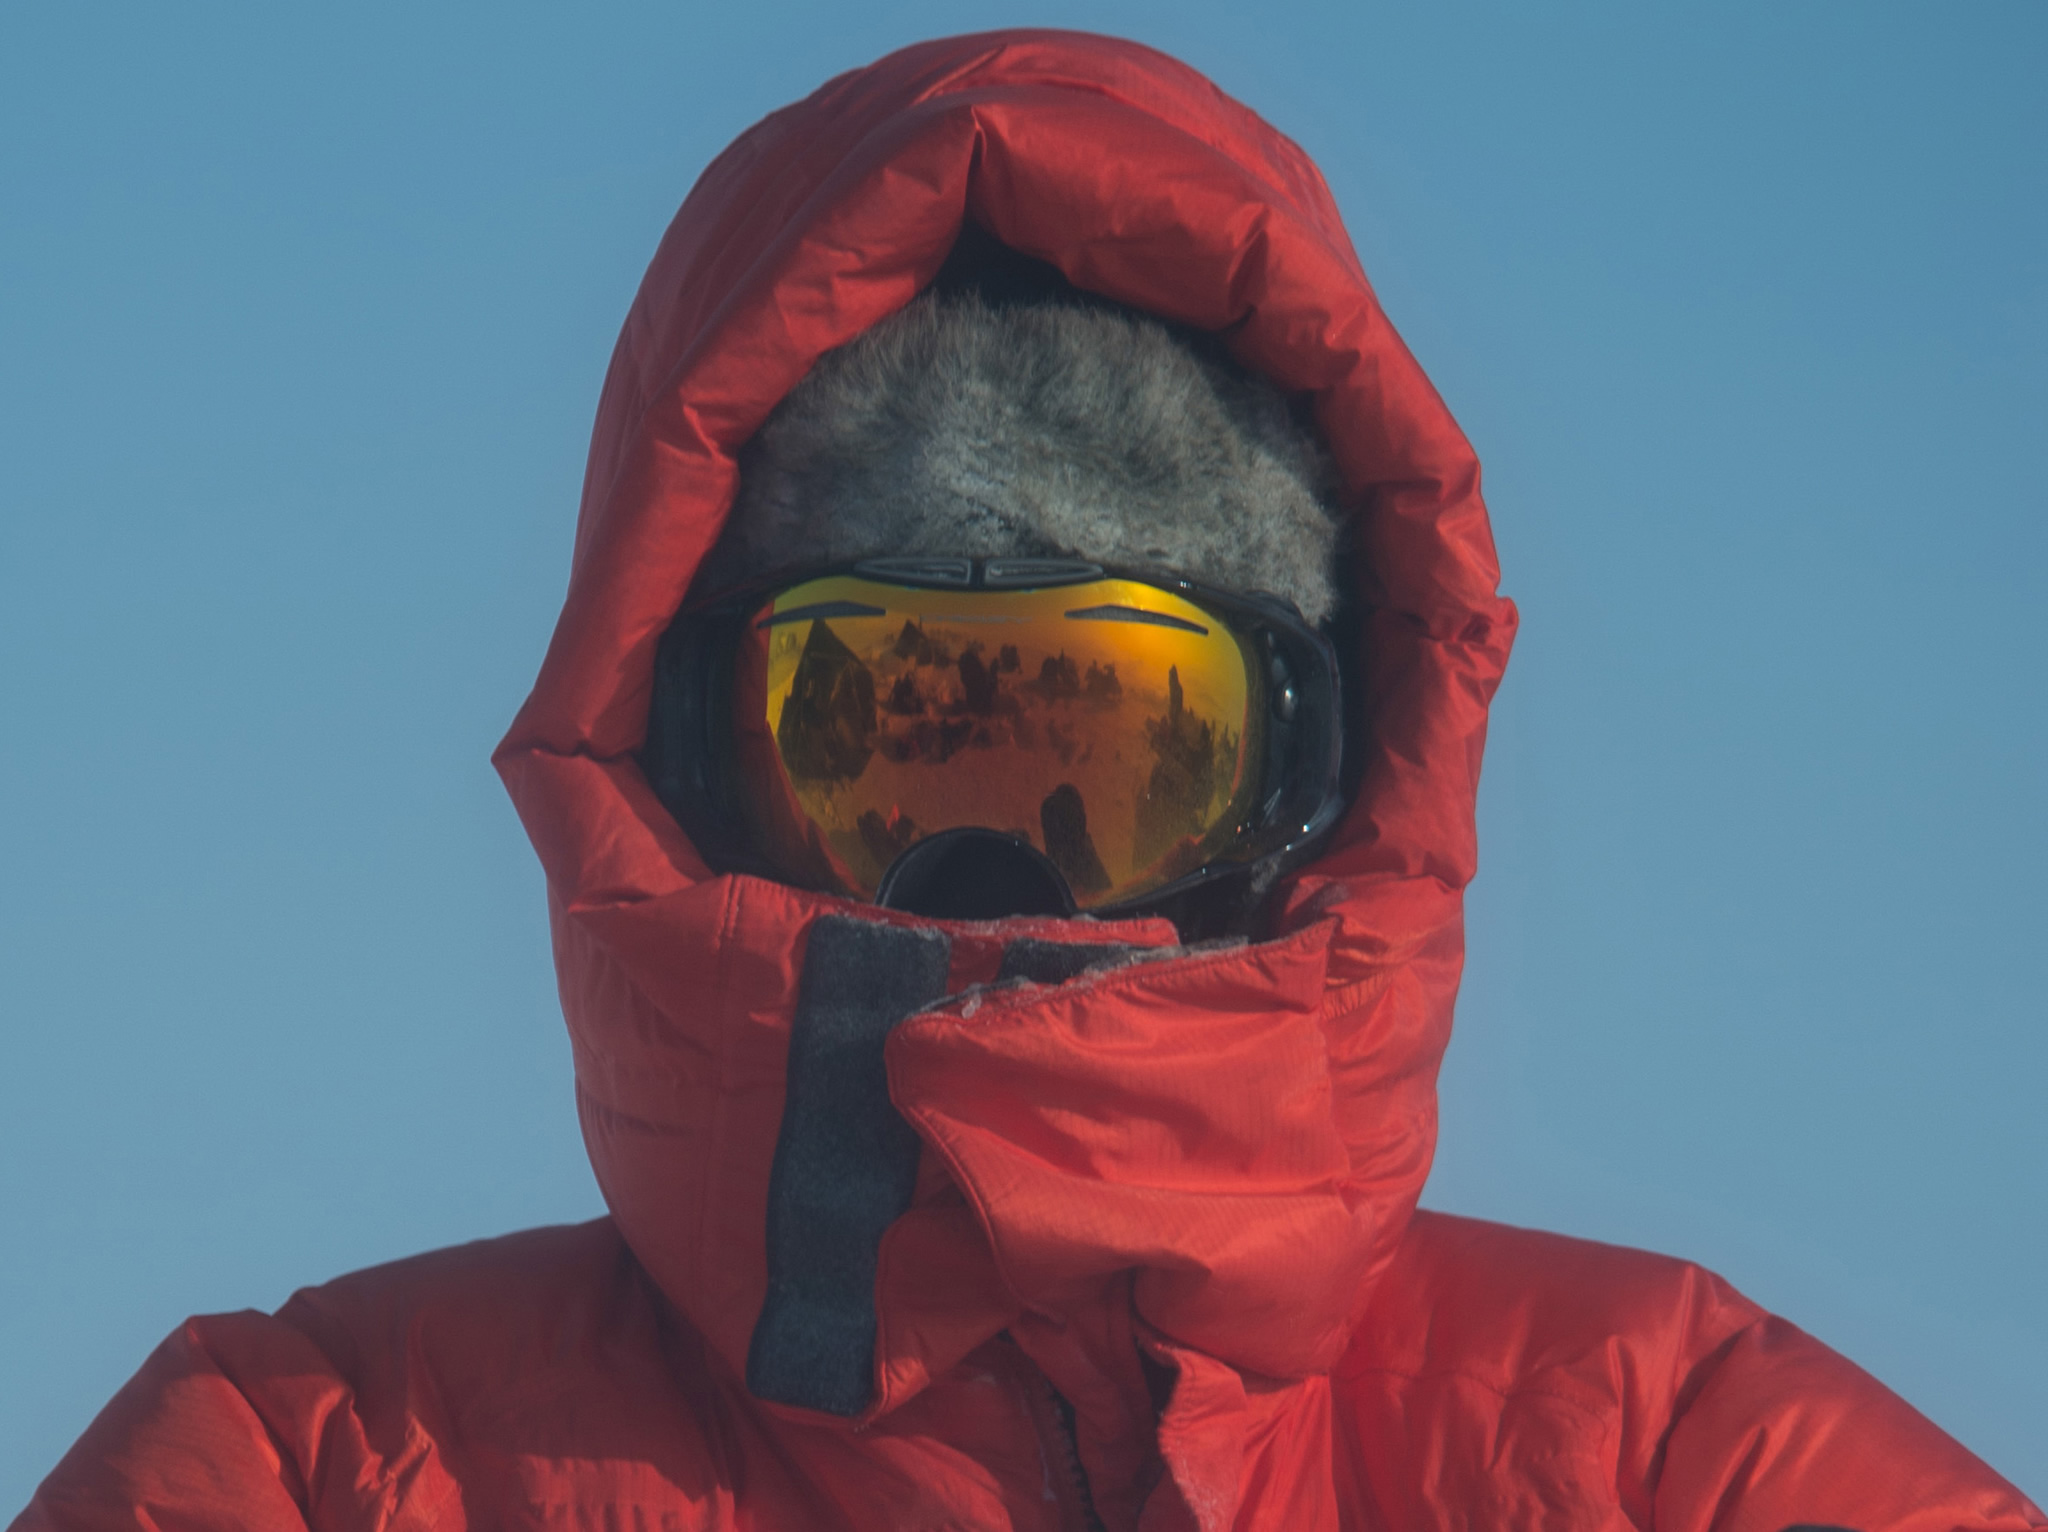 Man wearing hood and goggles